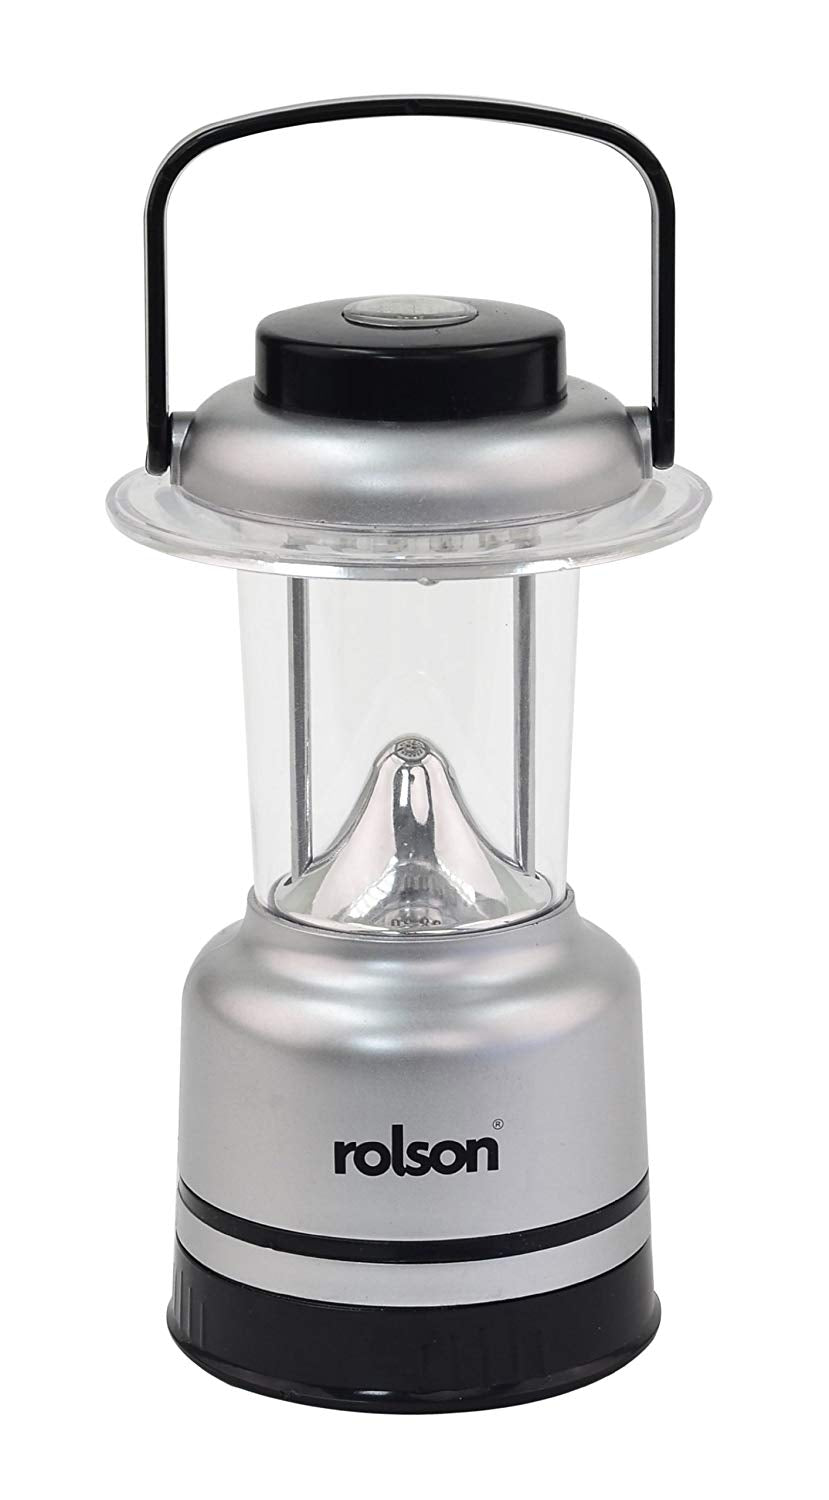 Rolson 15 Led Lantern/Dimmer - Life's a breeze GB Ltd